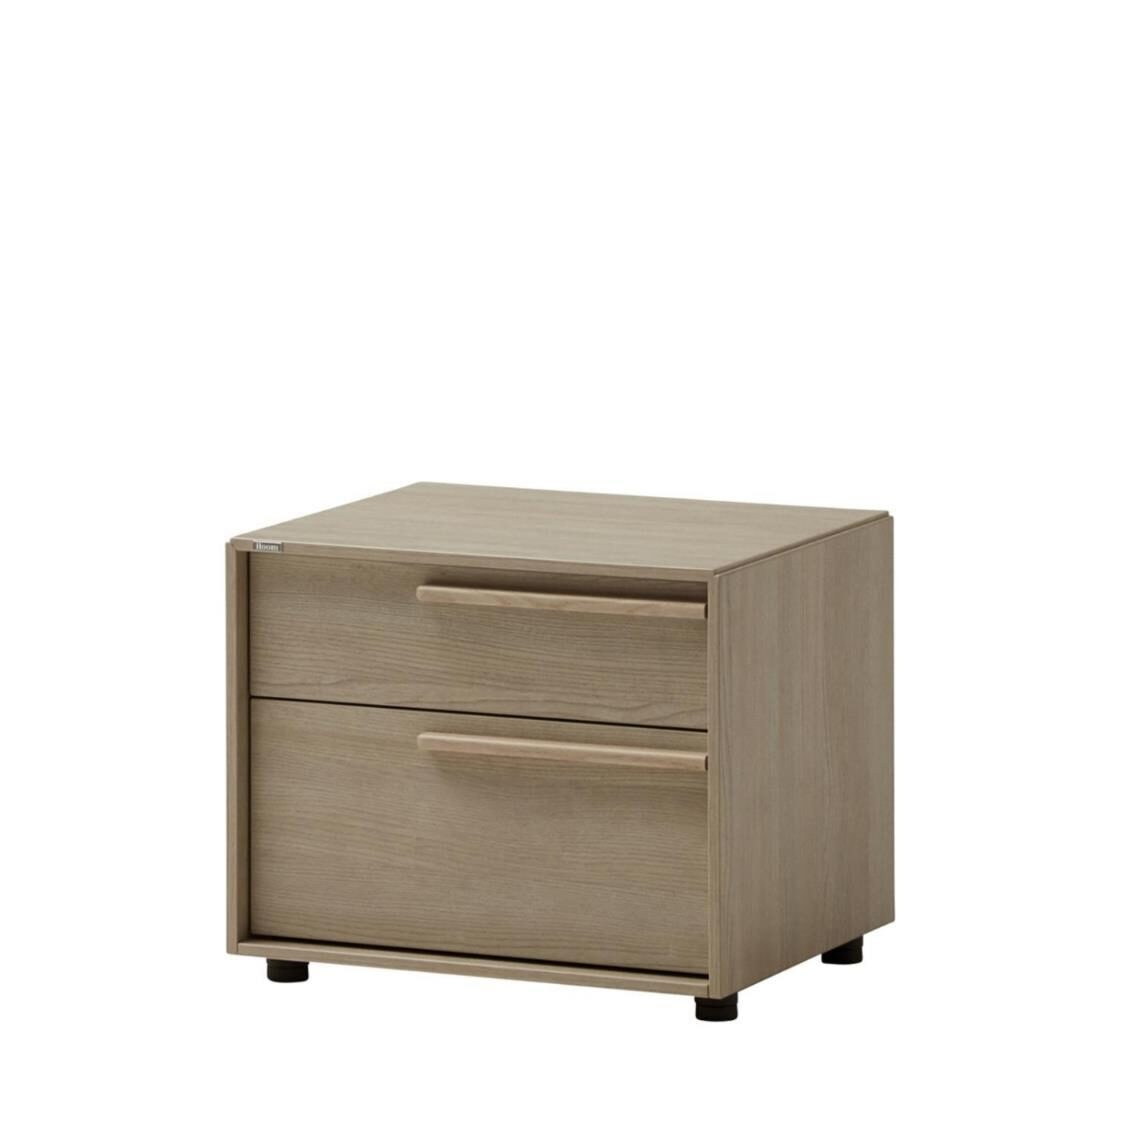 Cusino 2-Story Side Table 500W OS Olmless Ruster